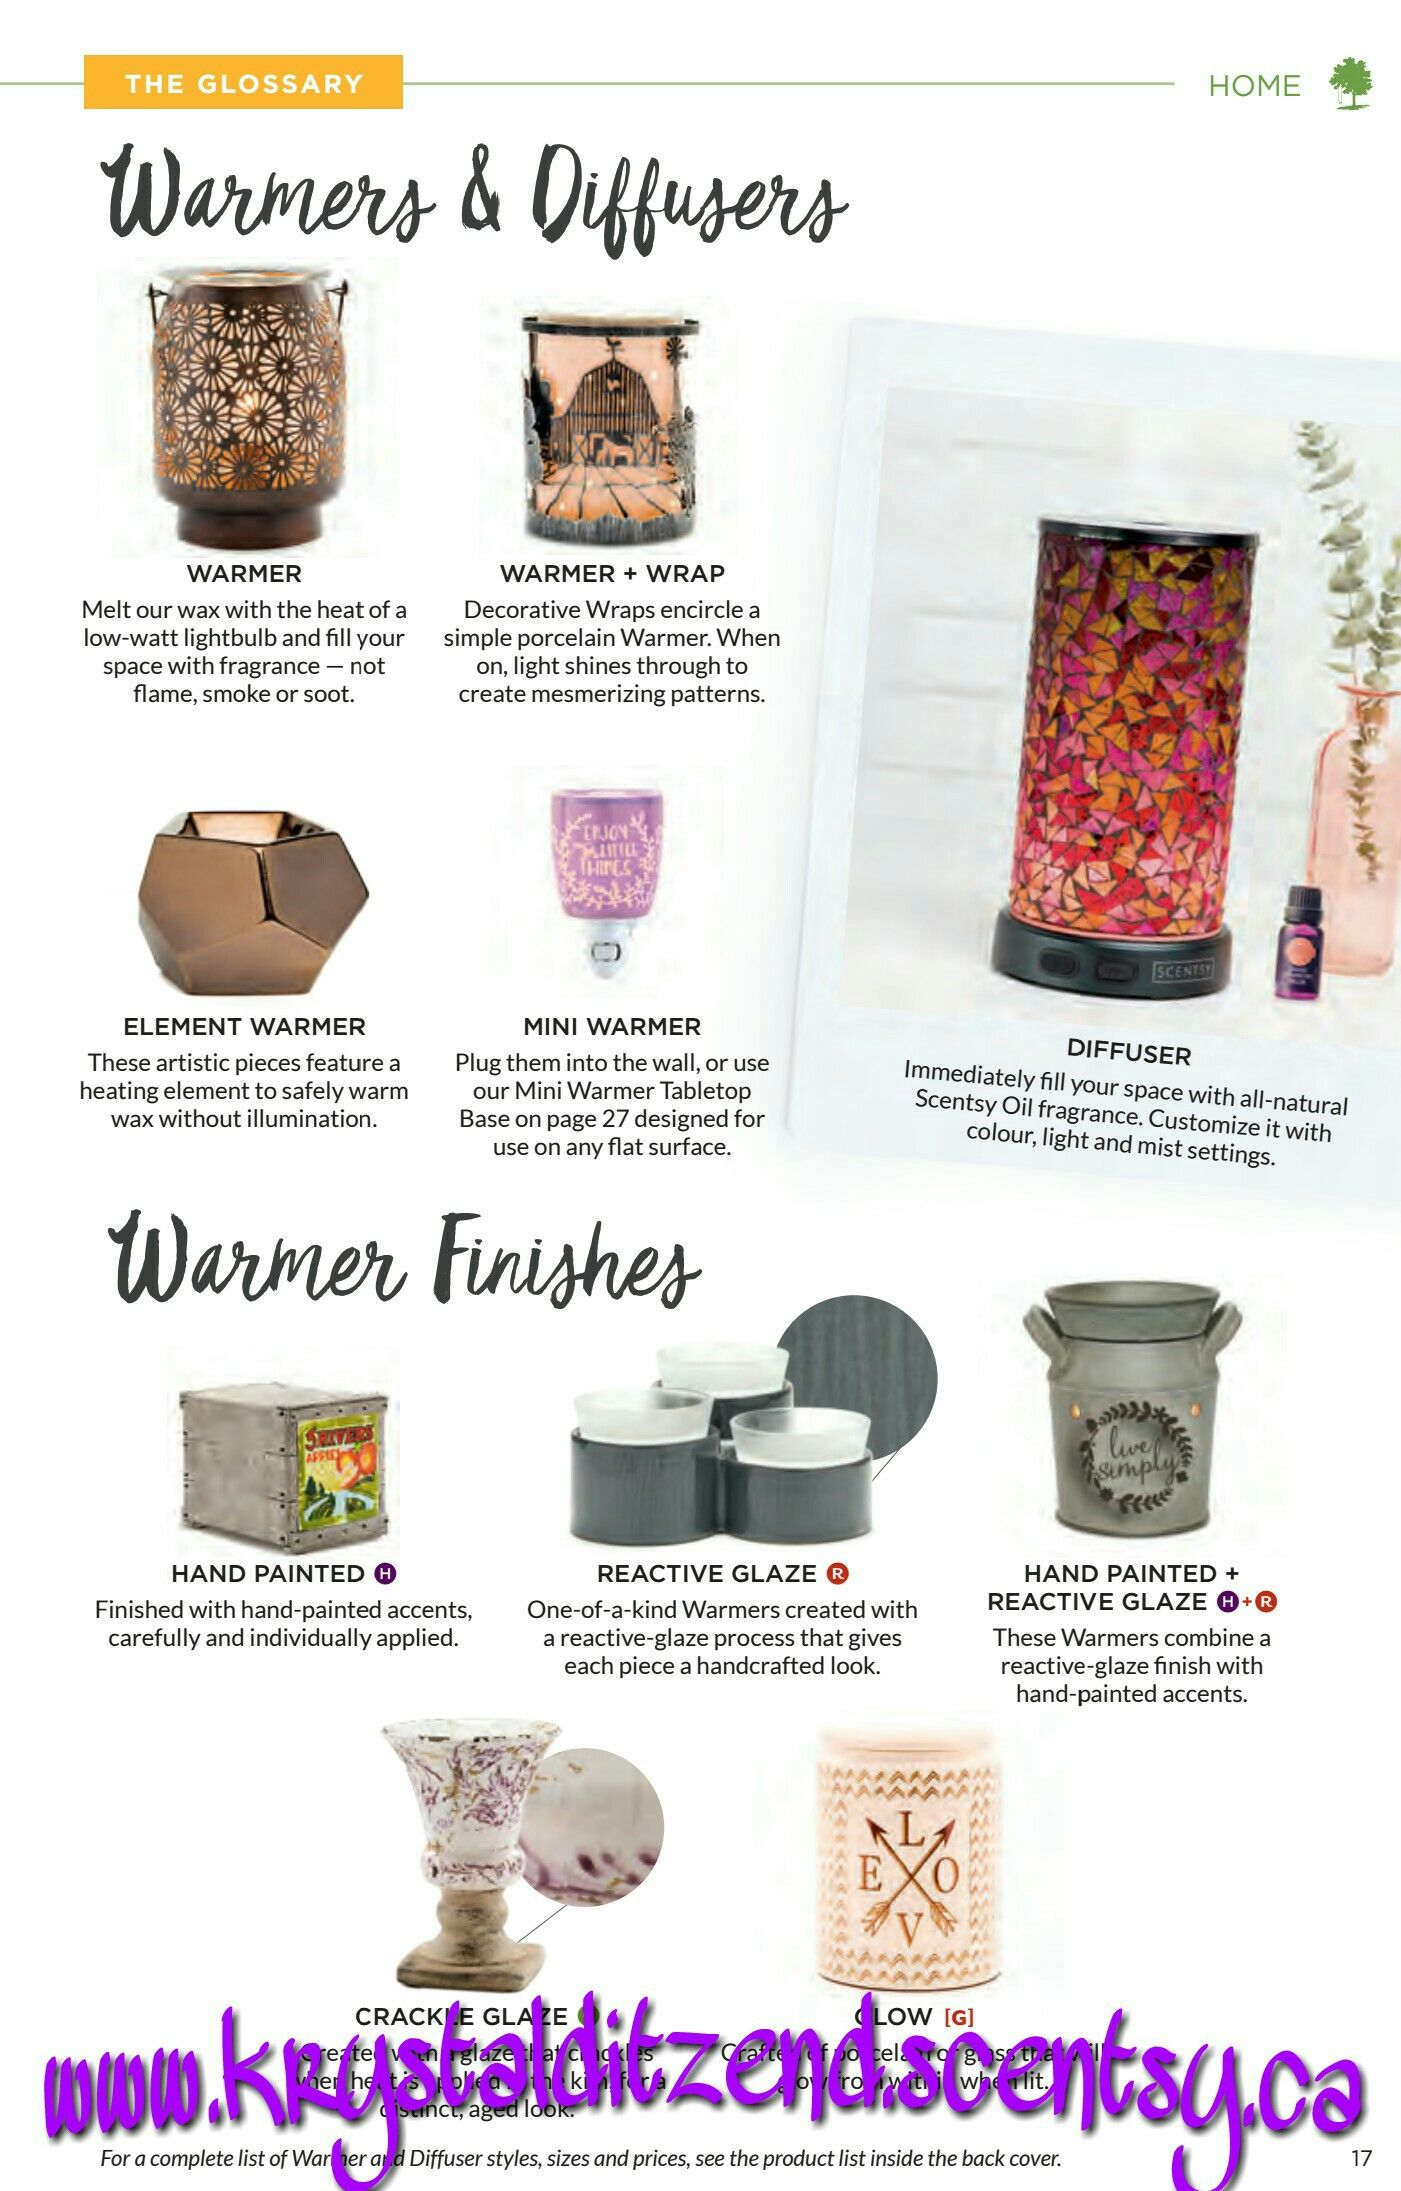 New warmers and diffusers from the spring/Summer collection